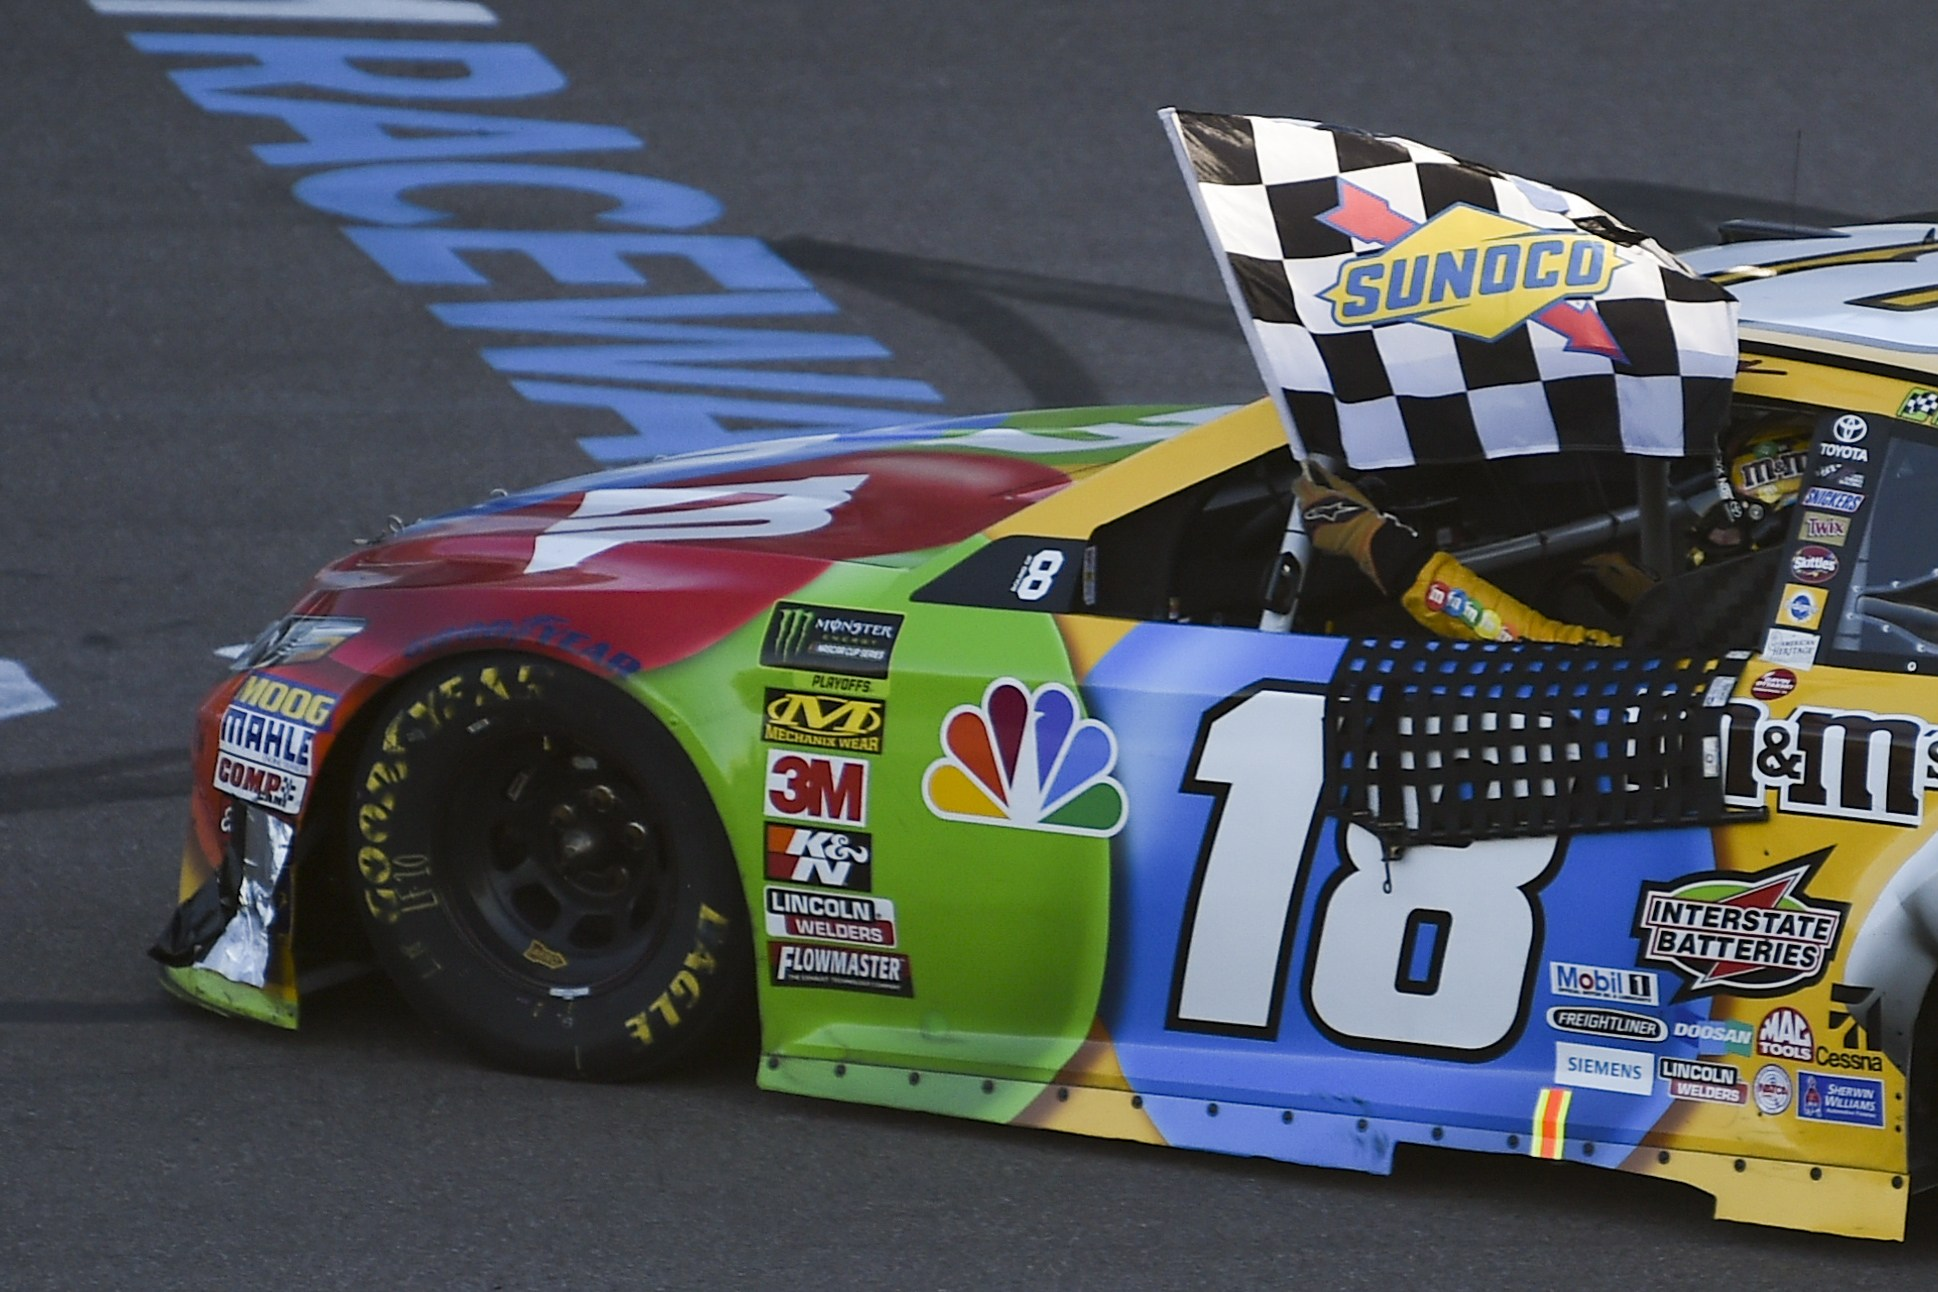 Kyle Busch Wins in Phoenix, Joins Harvick, Logano, and Truex in NASCAR Championship 4